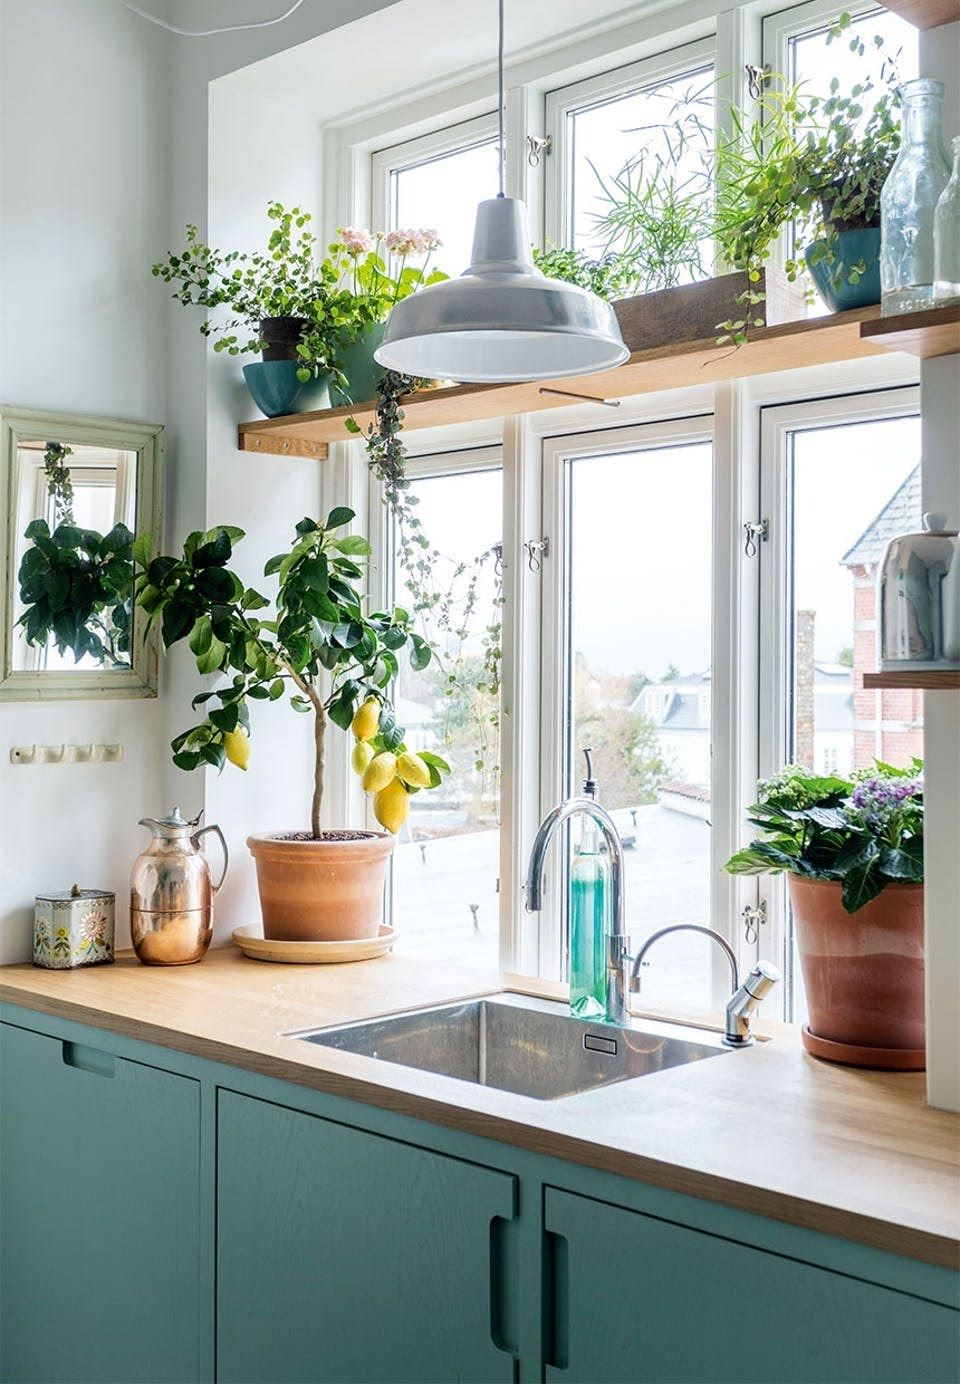 superb Decorating Kitchen Counter Space Part - 9: Lots of windows behind and above kitchen counter space. Nice and light.  Several live plants including a small lemon tree.